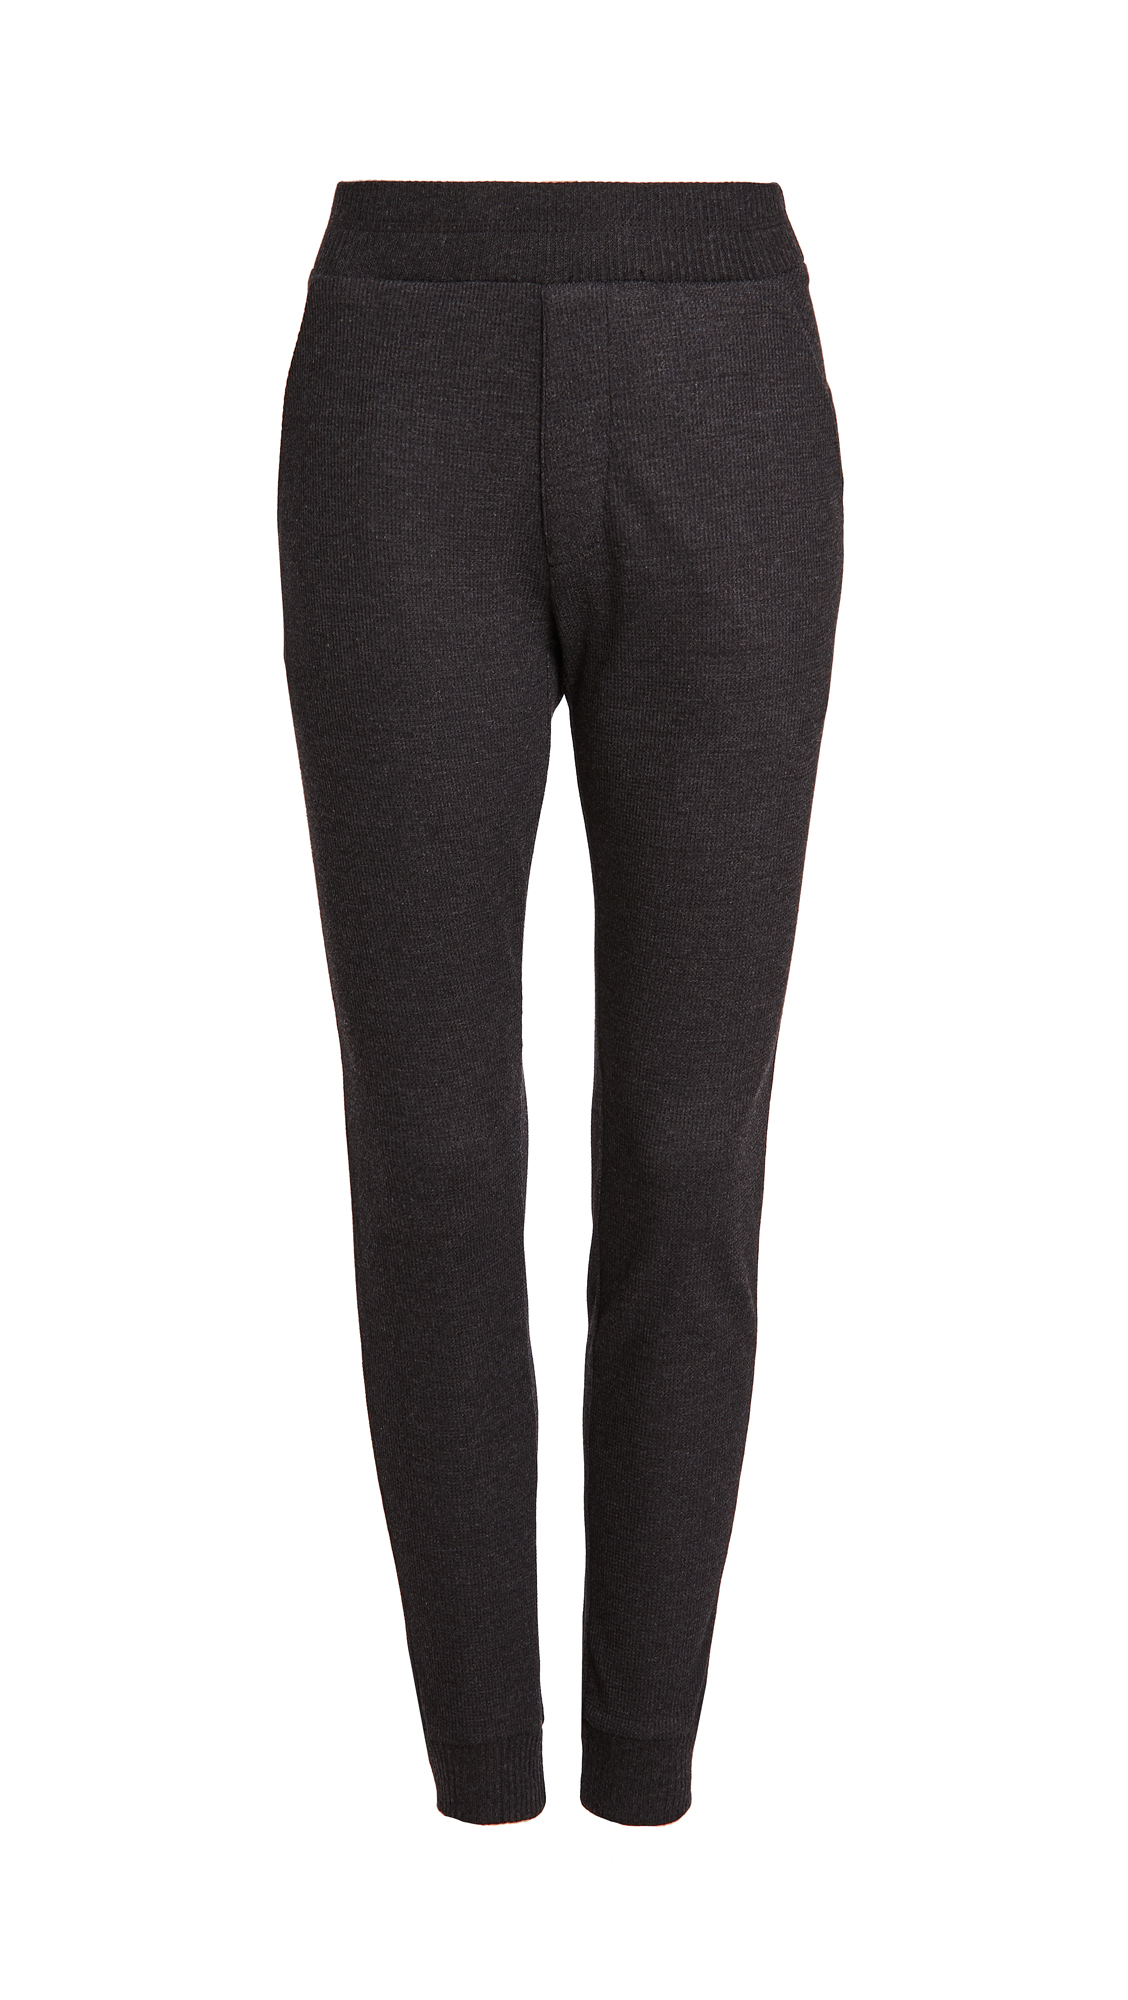 ALALA Thermal Sweatpants